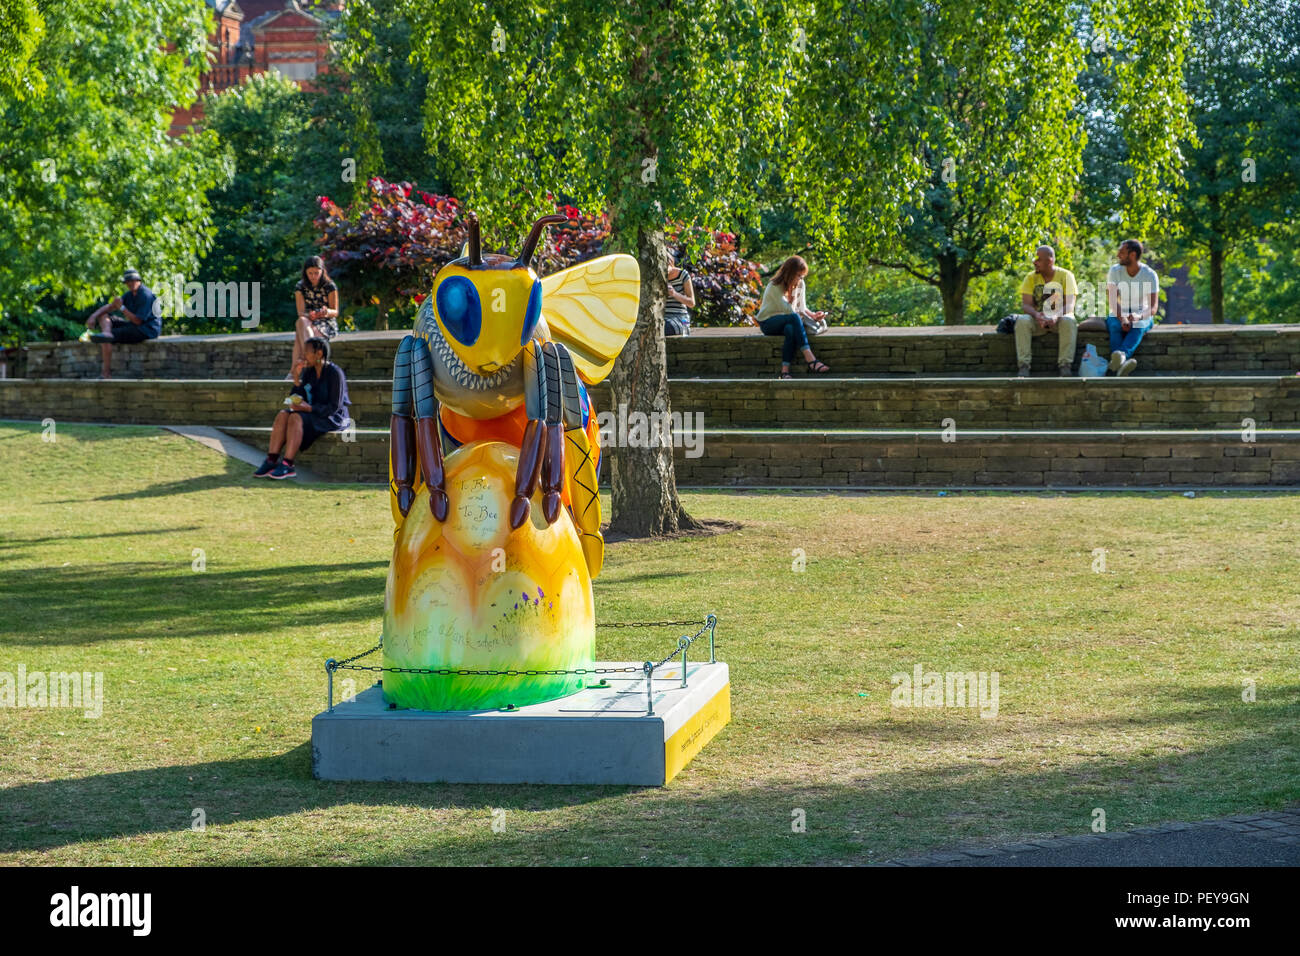 Manchester, United Kingdom - July 25, 2018: A Bee in the City sculpture in All Saints Park. Over 100  Bee Sculptures are publicly being displayed. - Stock Image